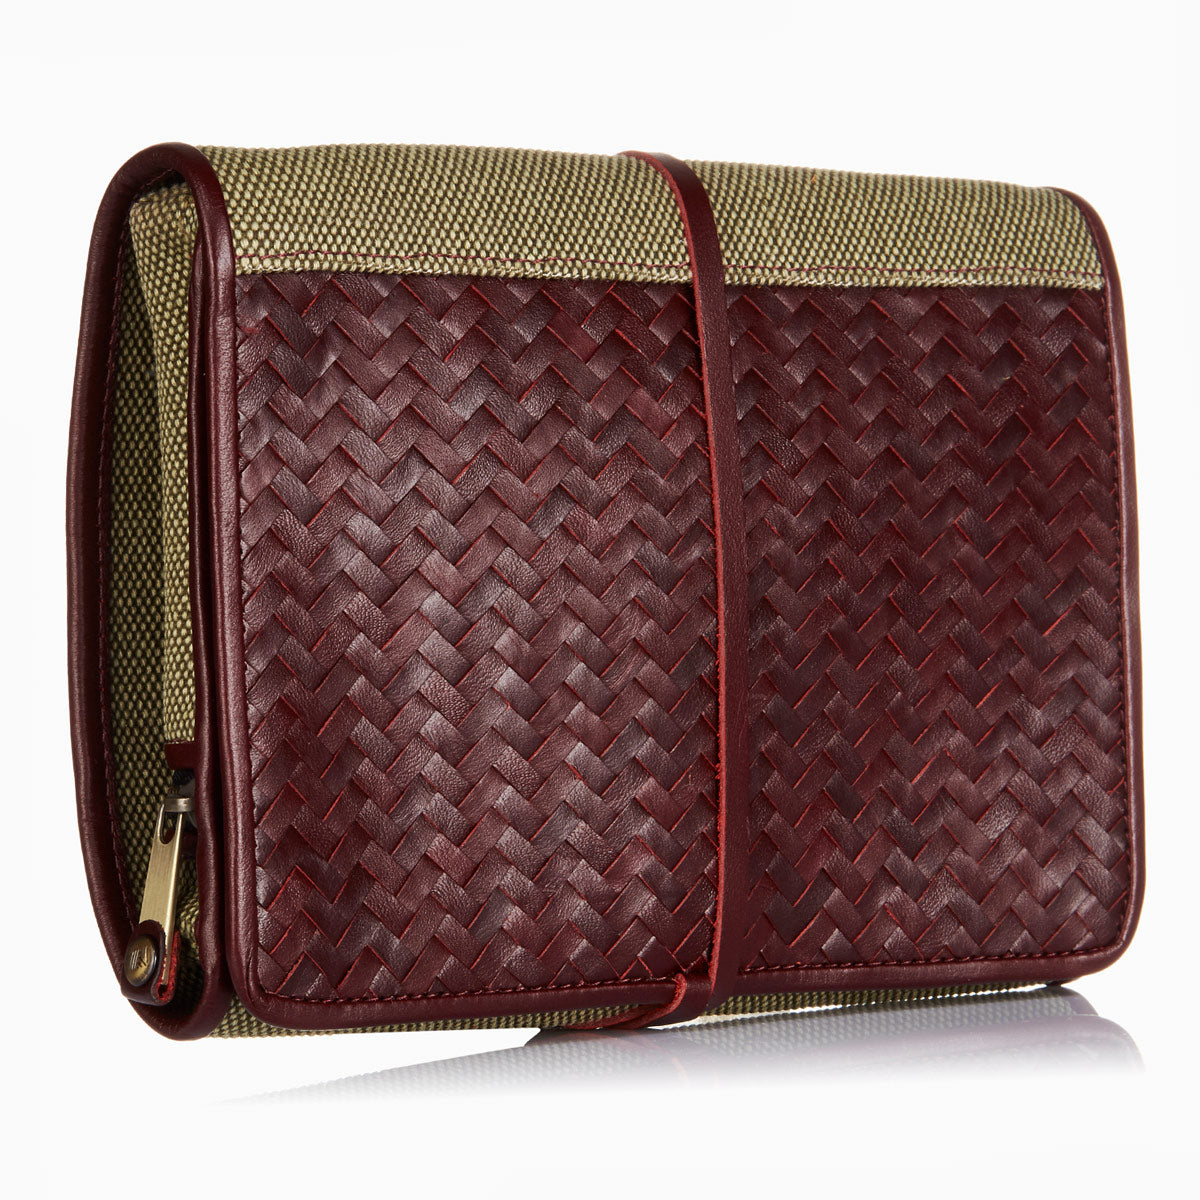 Herringbone Wash Roll, Bordeaux Red: Men's Toiletry Hanging Travel Bag